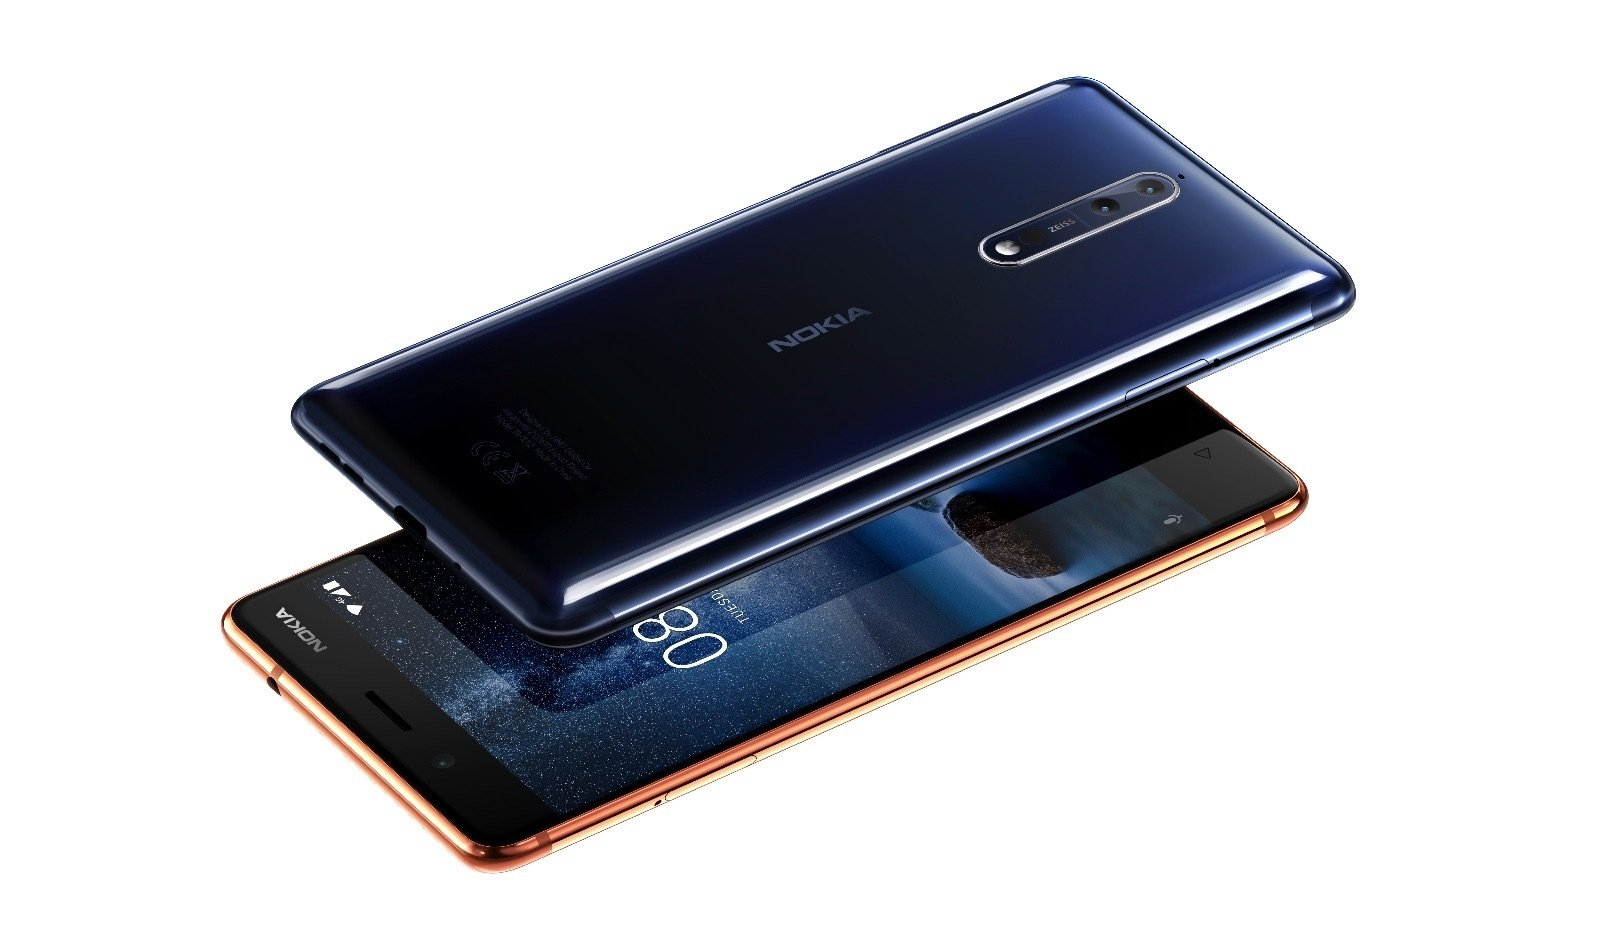 Nokia 8 Polished Blue and Copper